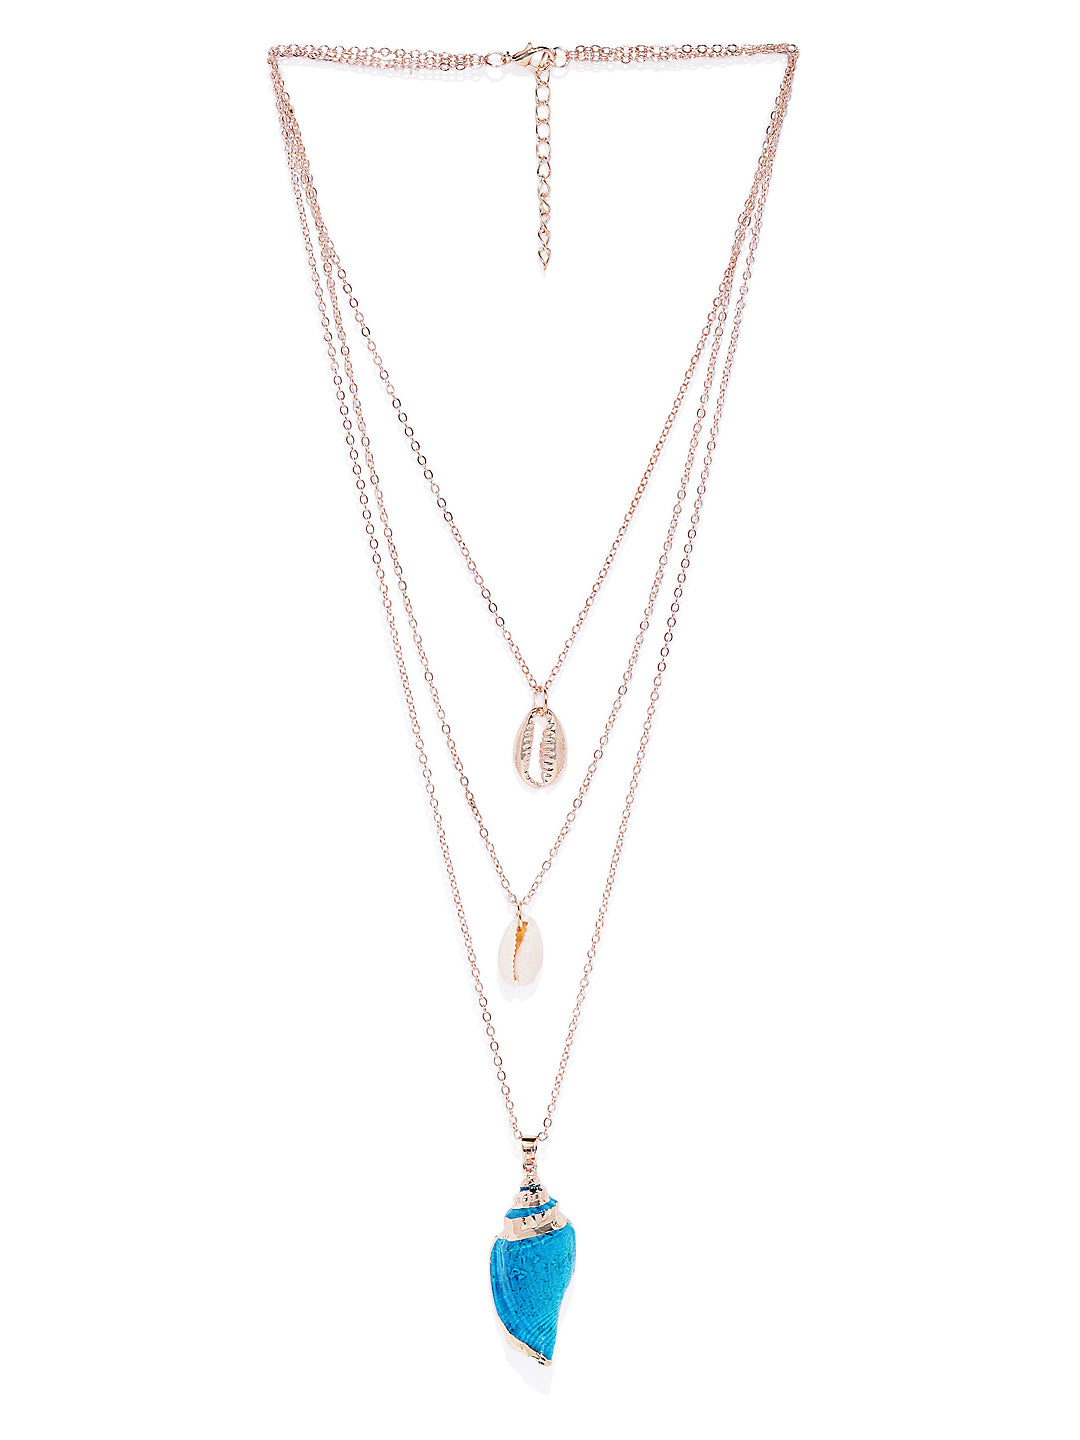 Blue Layered Shell Necklace - ChicMela